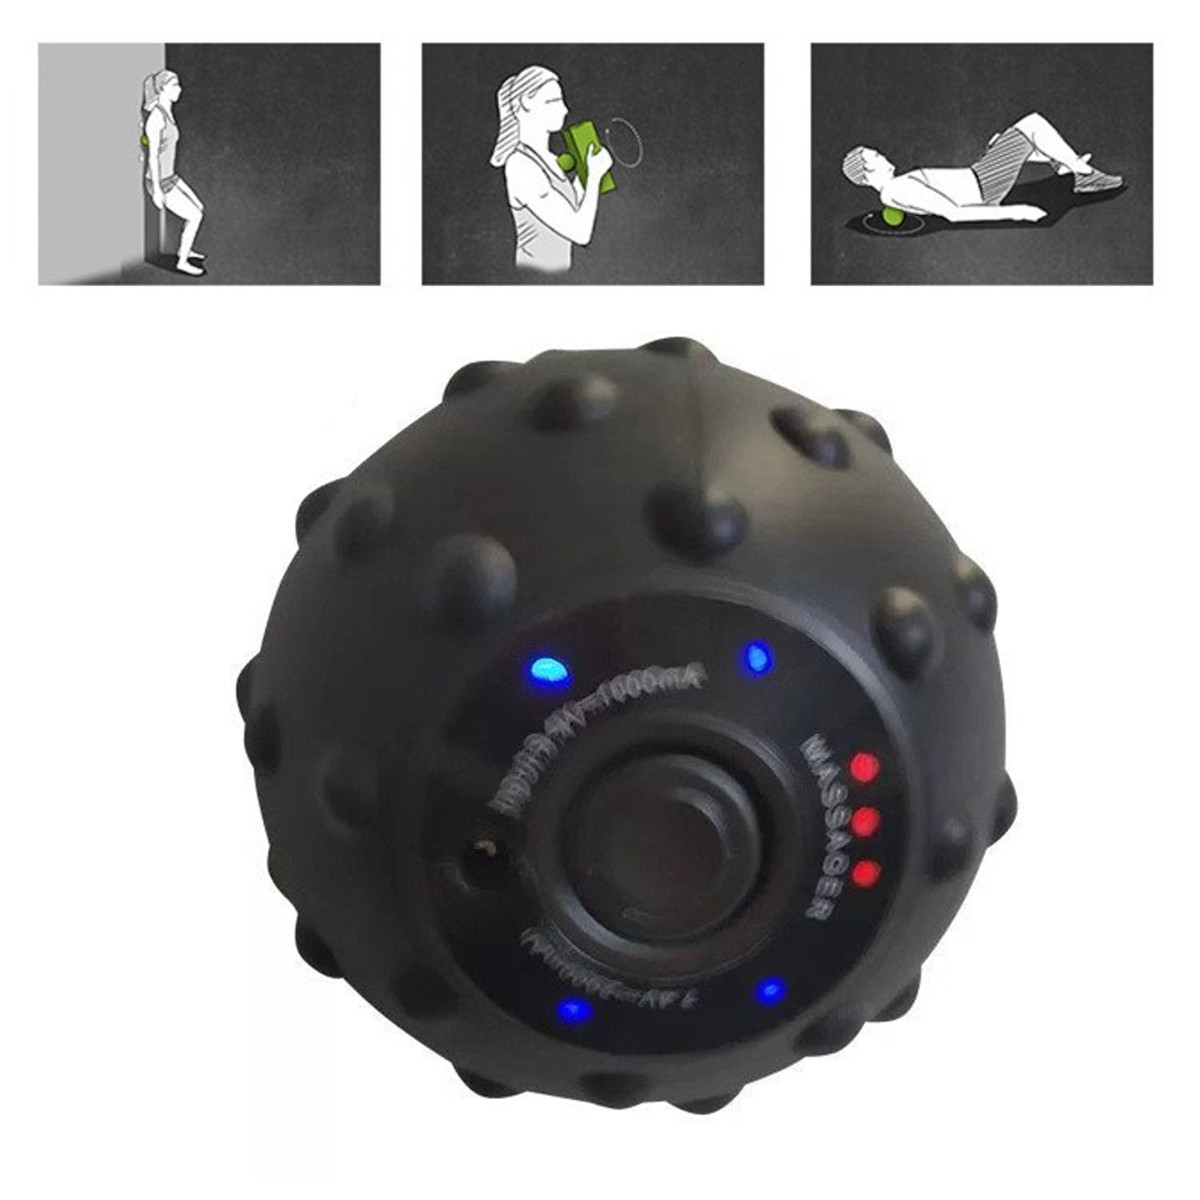 12W Electric Roller Ball 4 Speed High Intensity Vibrating Massage Ball Senoeory Muscle Vibration Massager Yoga Fitness Equipment